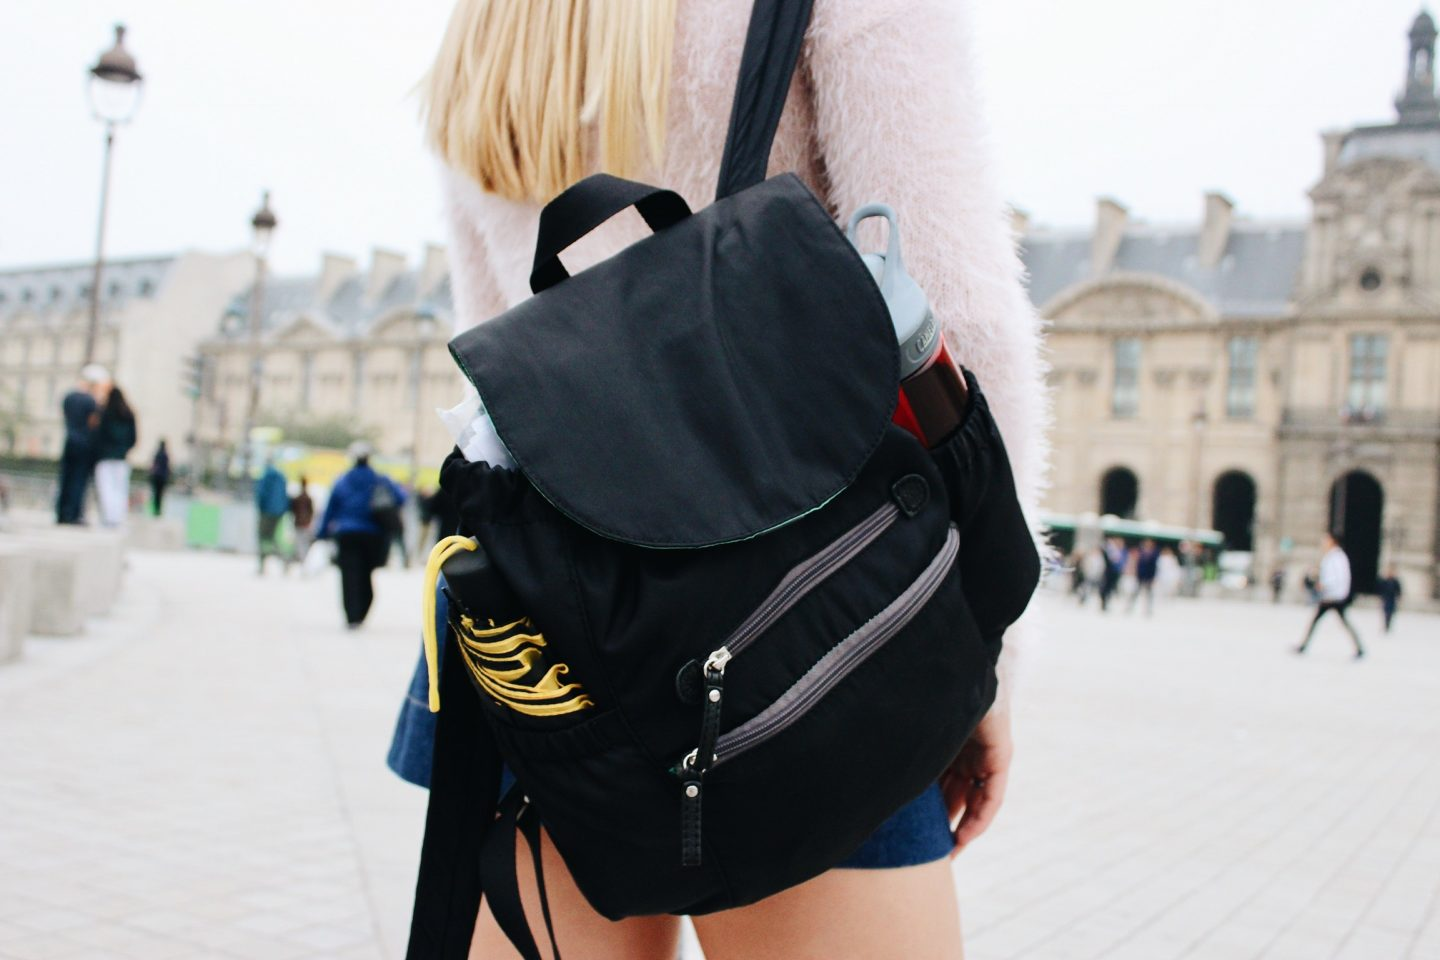 Posing with my travel backpack in Paris, France!